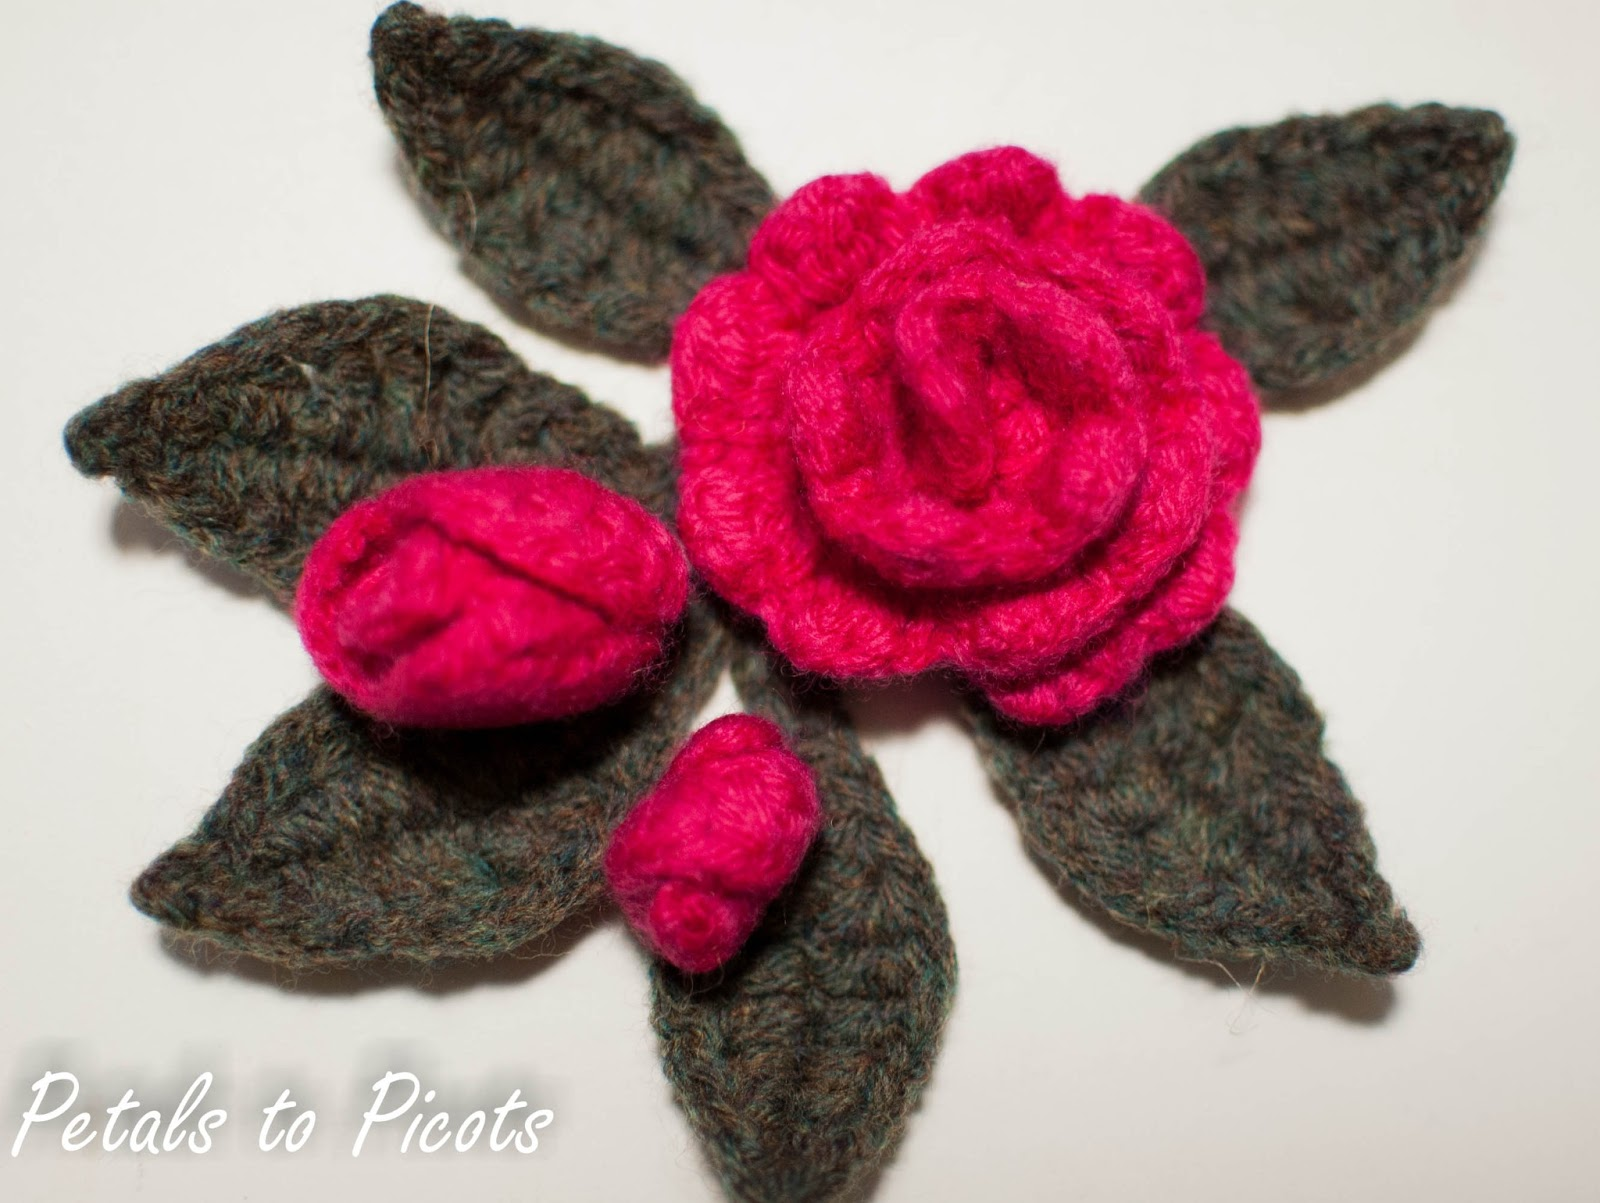 Rosebud and Leaf Pattern to Embellish a Burlap Wreath ...